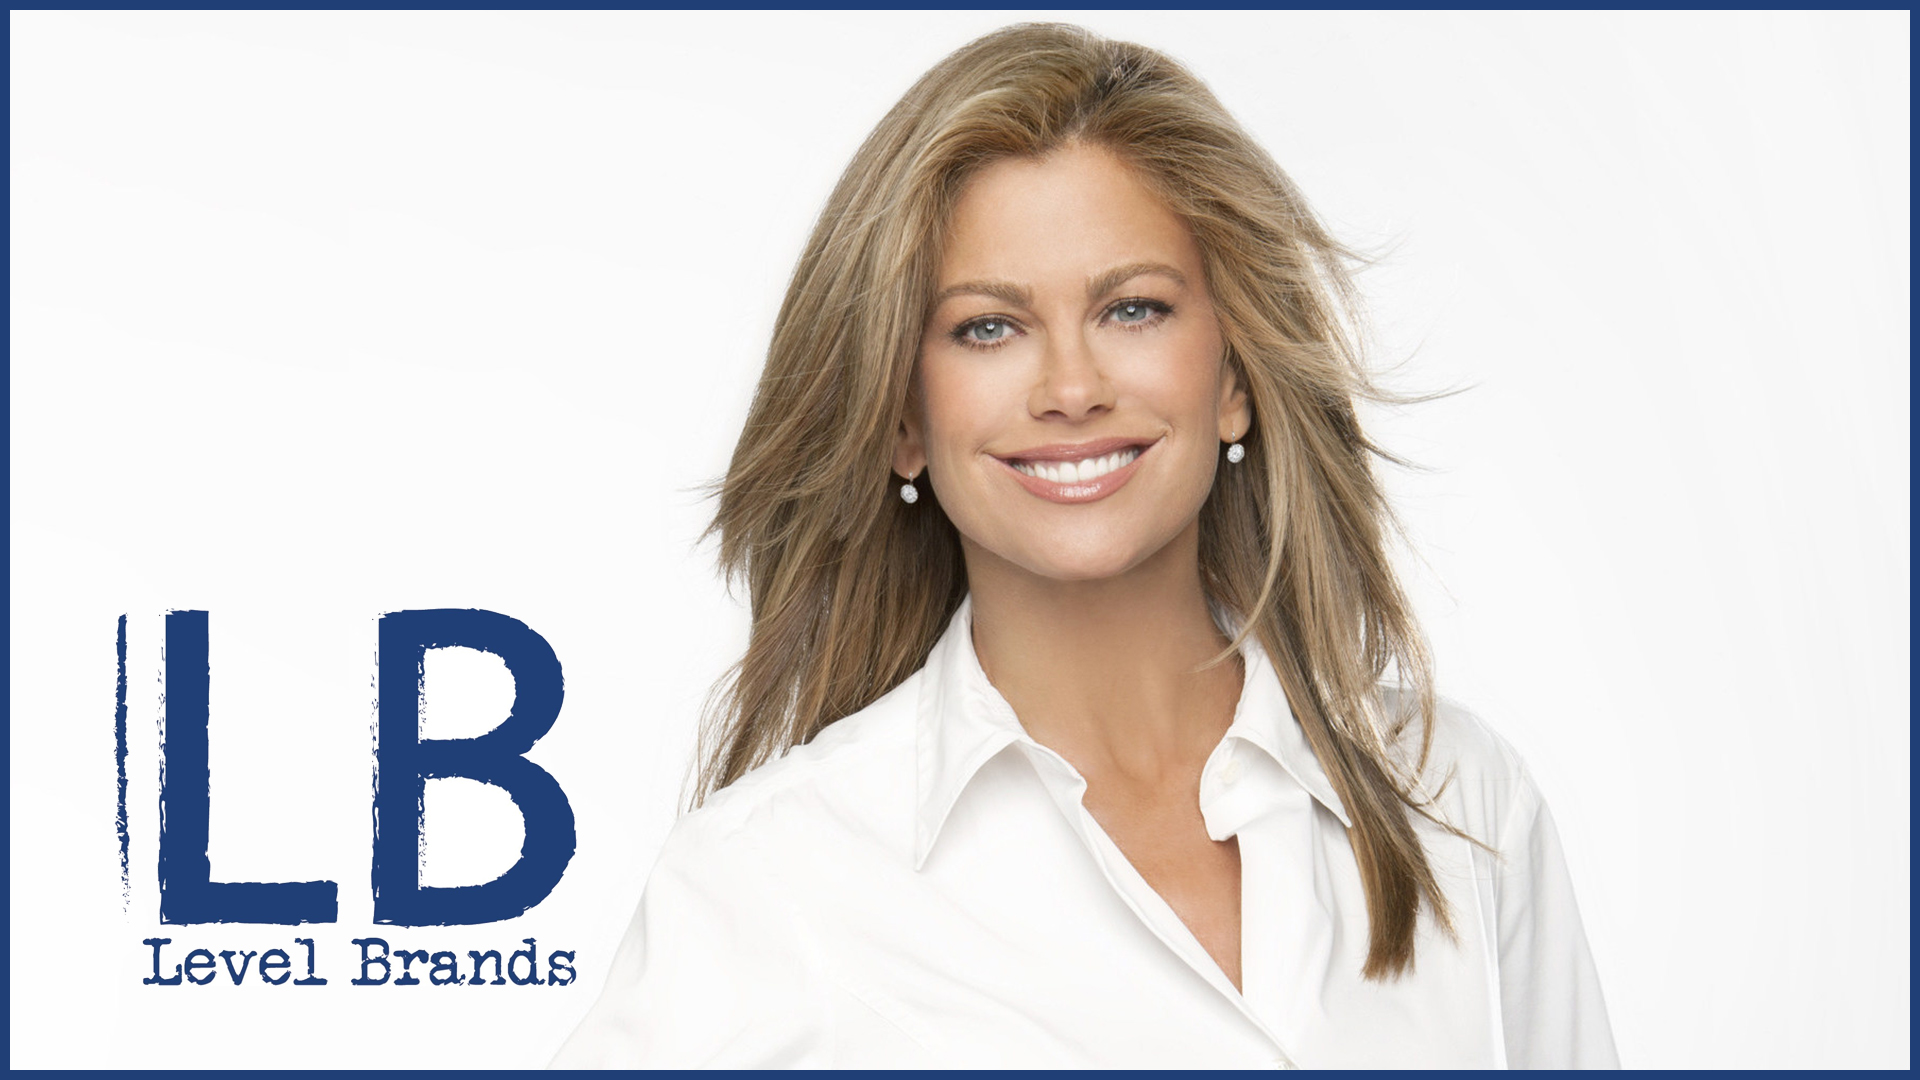 Isodiol and Level Brands Inc. CEO Kathy Ireland to Launch 3 New CBD Products